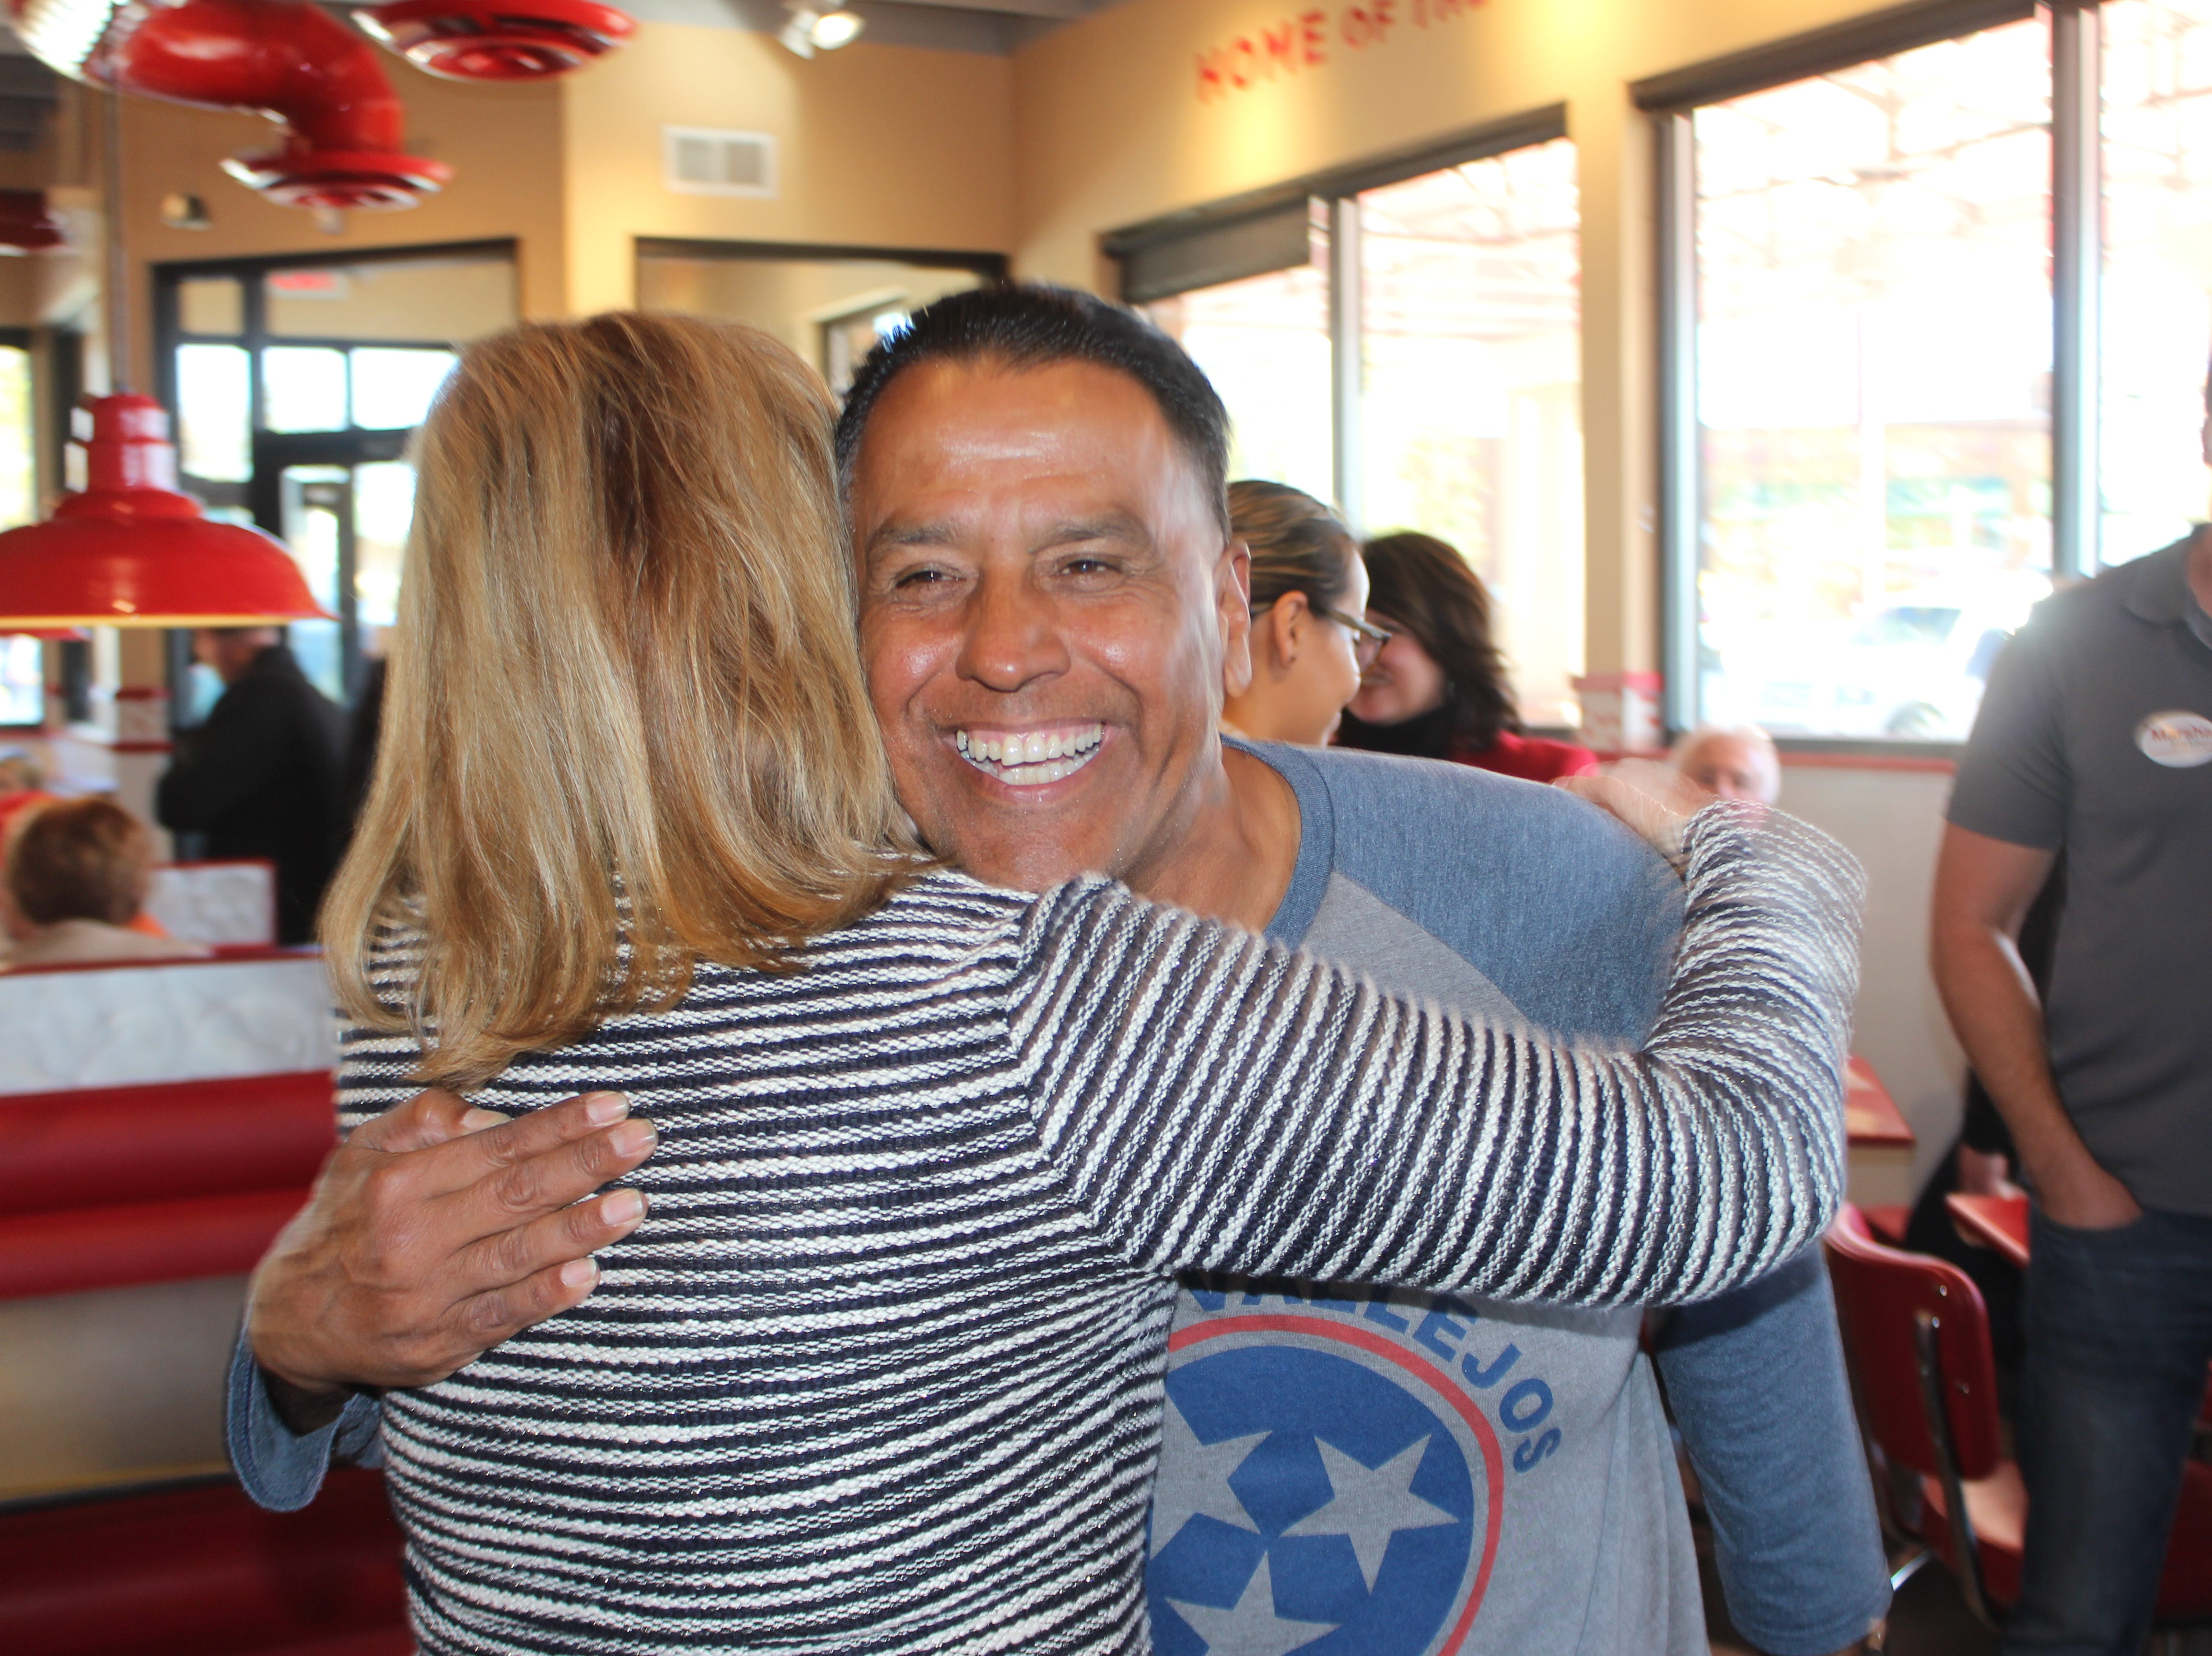 State House District 67 Republican candidate Tommy Vallejos greets Rep. Marsha Blackburn at her final campaign stop of her Senate campaign at Freddy's Steakburgers in Clarksville on Election Day, Nov. 6.